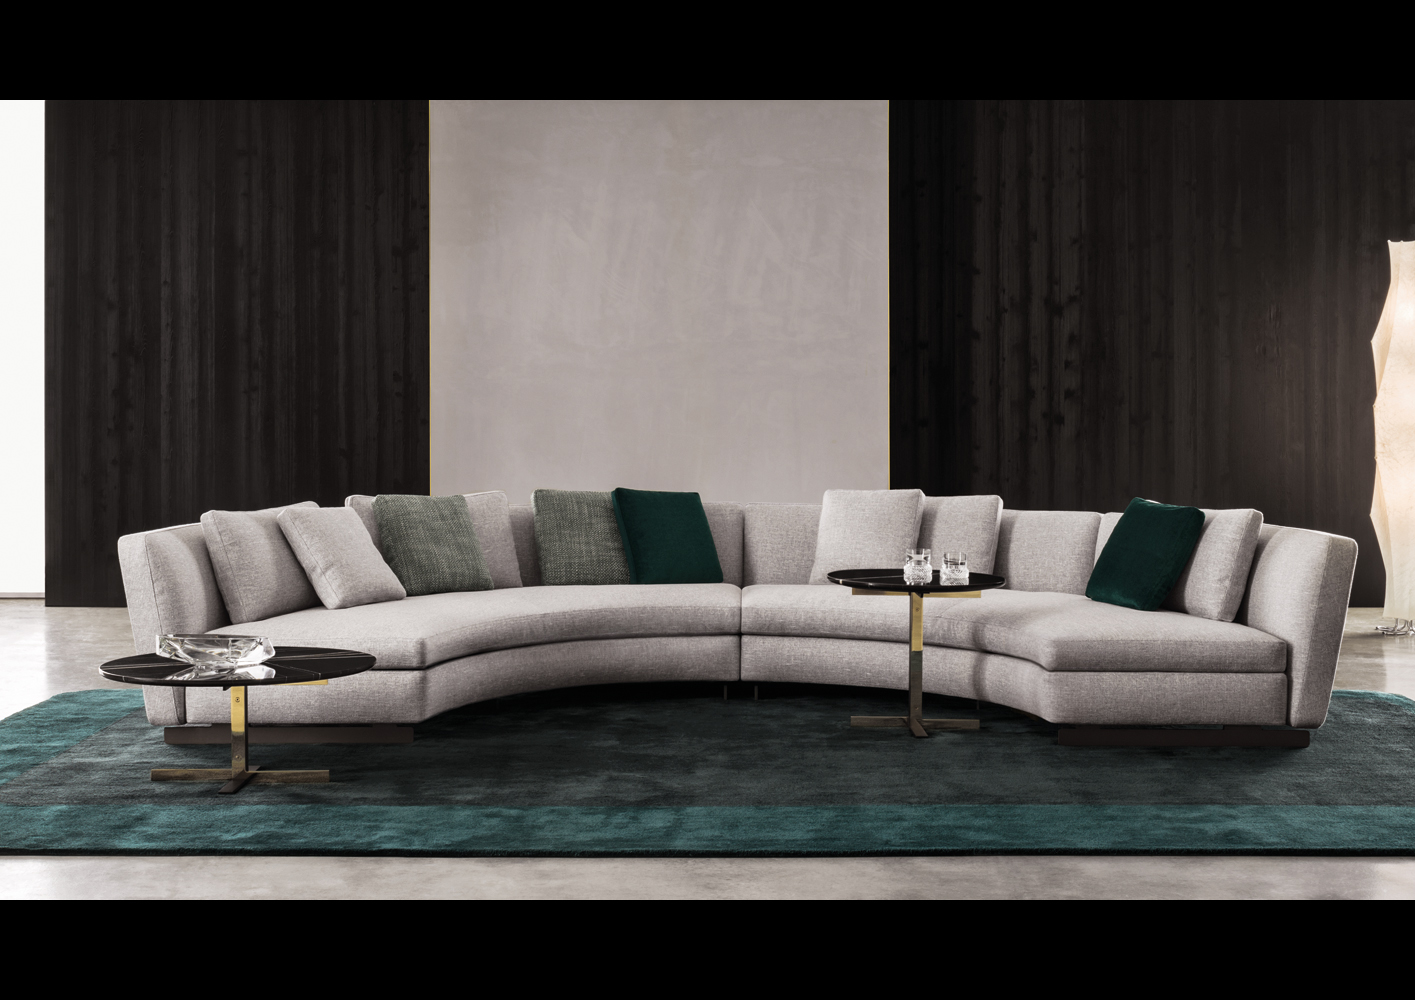 seymour sofa designed by rodolfo dordoni minotti. Black Bedroom Furniture Sets. Home Design Ideas